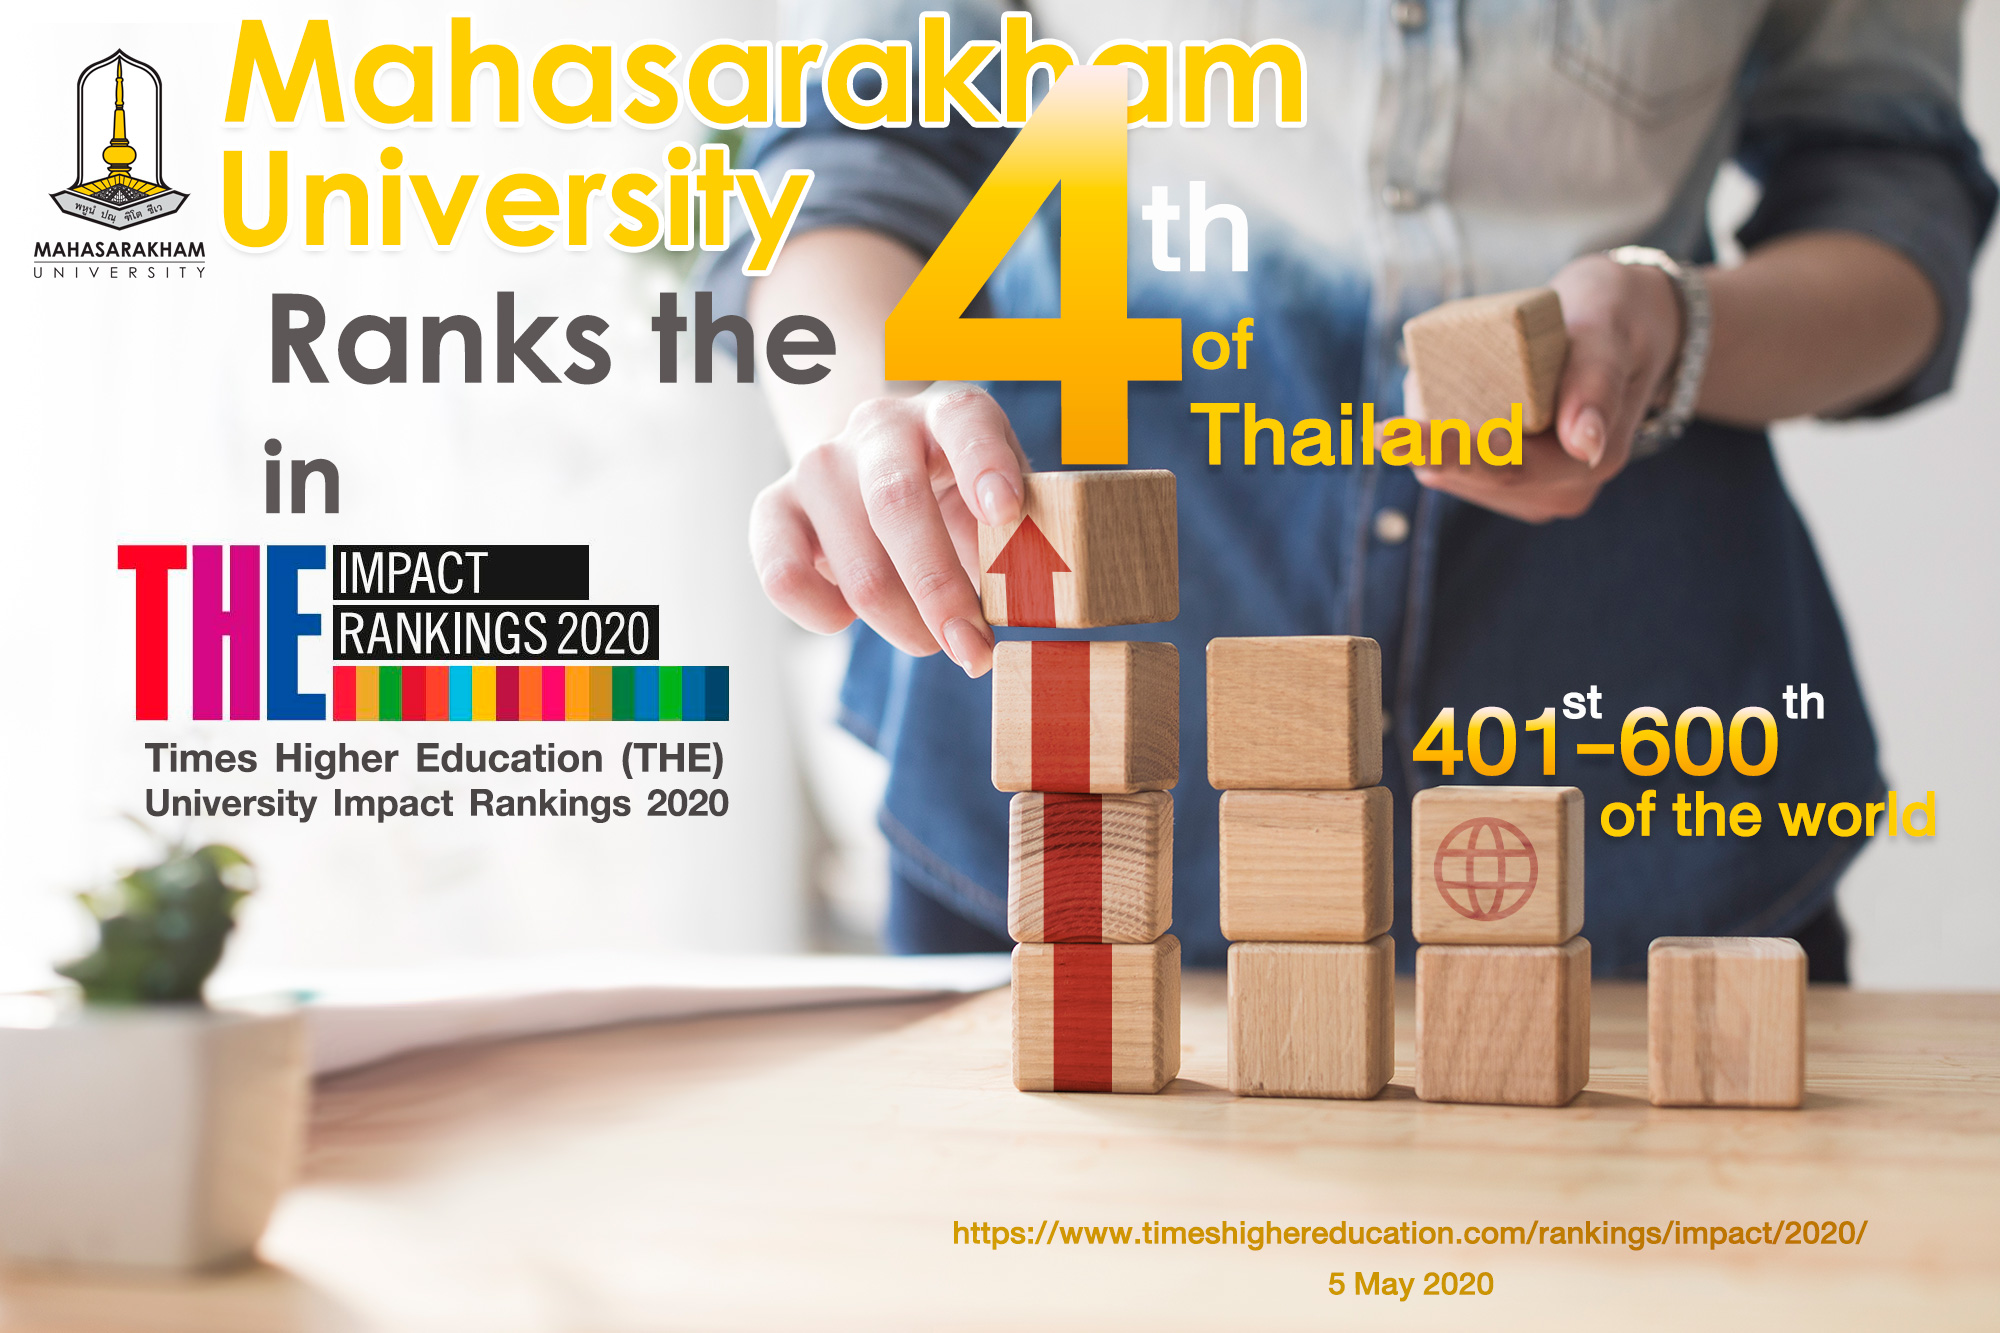 Mahasarakham University Ranks the 4th of Thailand in Times Higher Education (THE) University Impact Rankings 2020